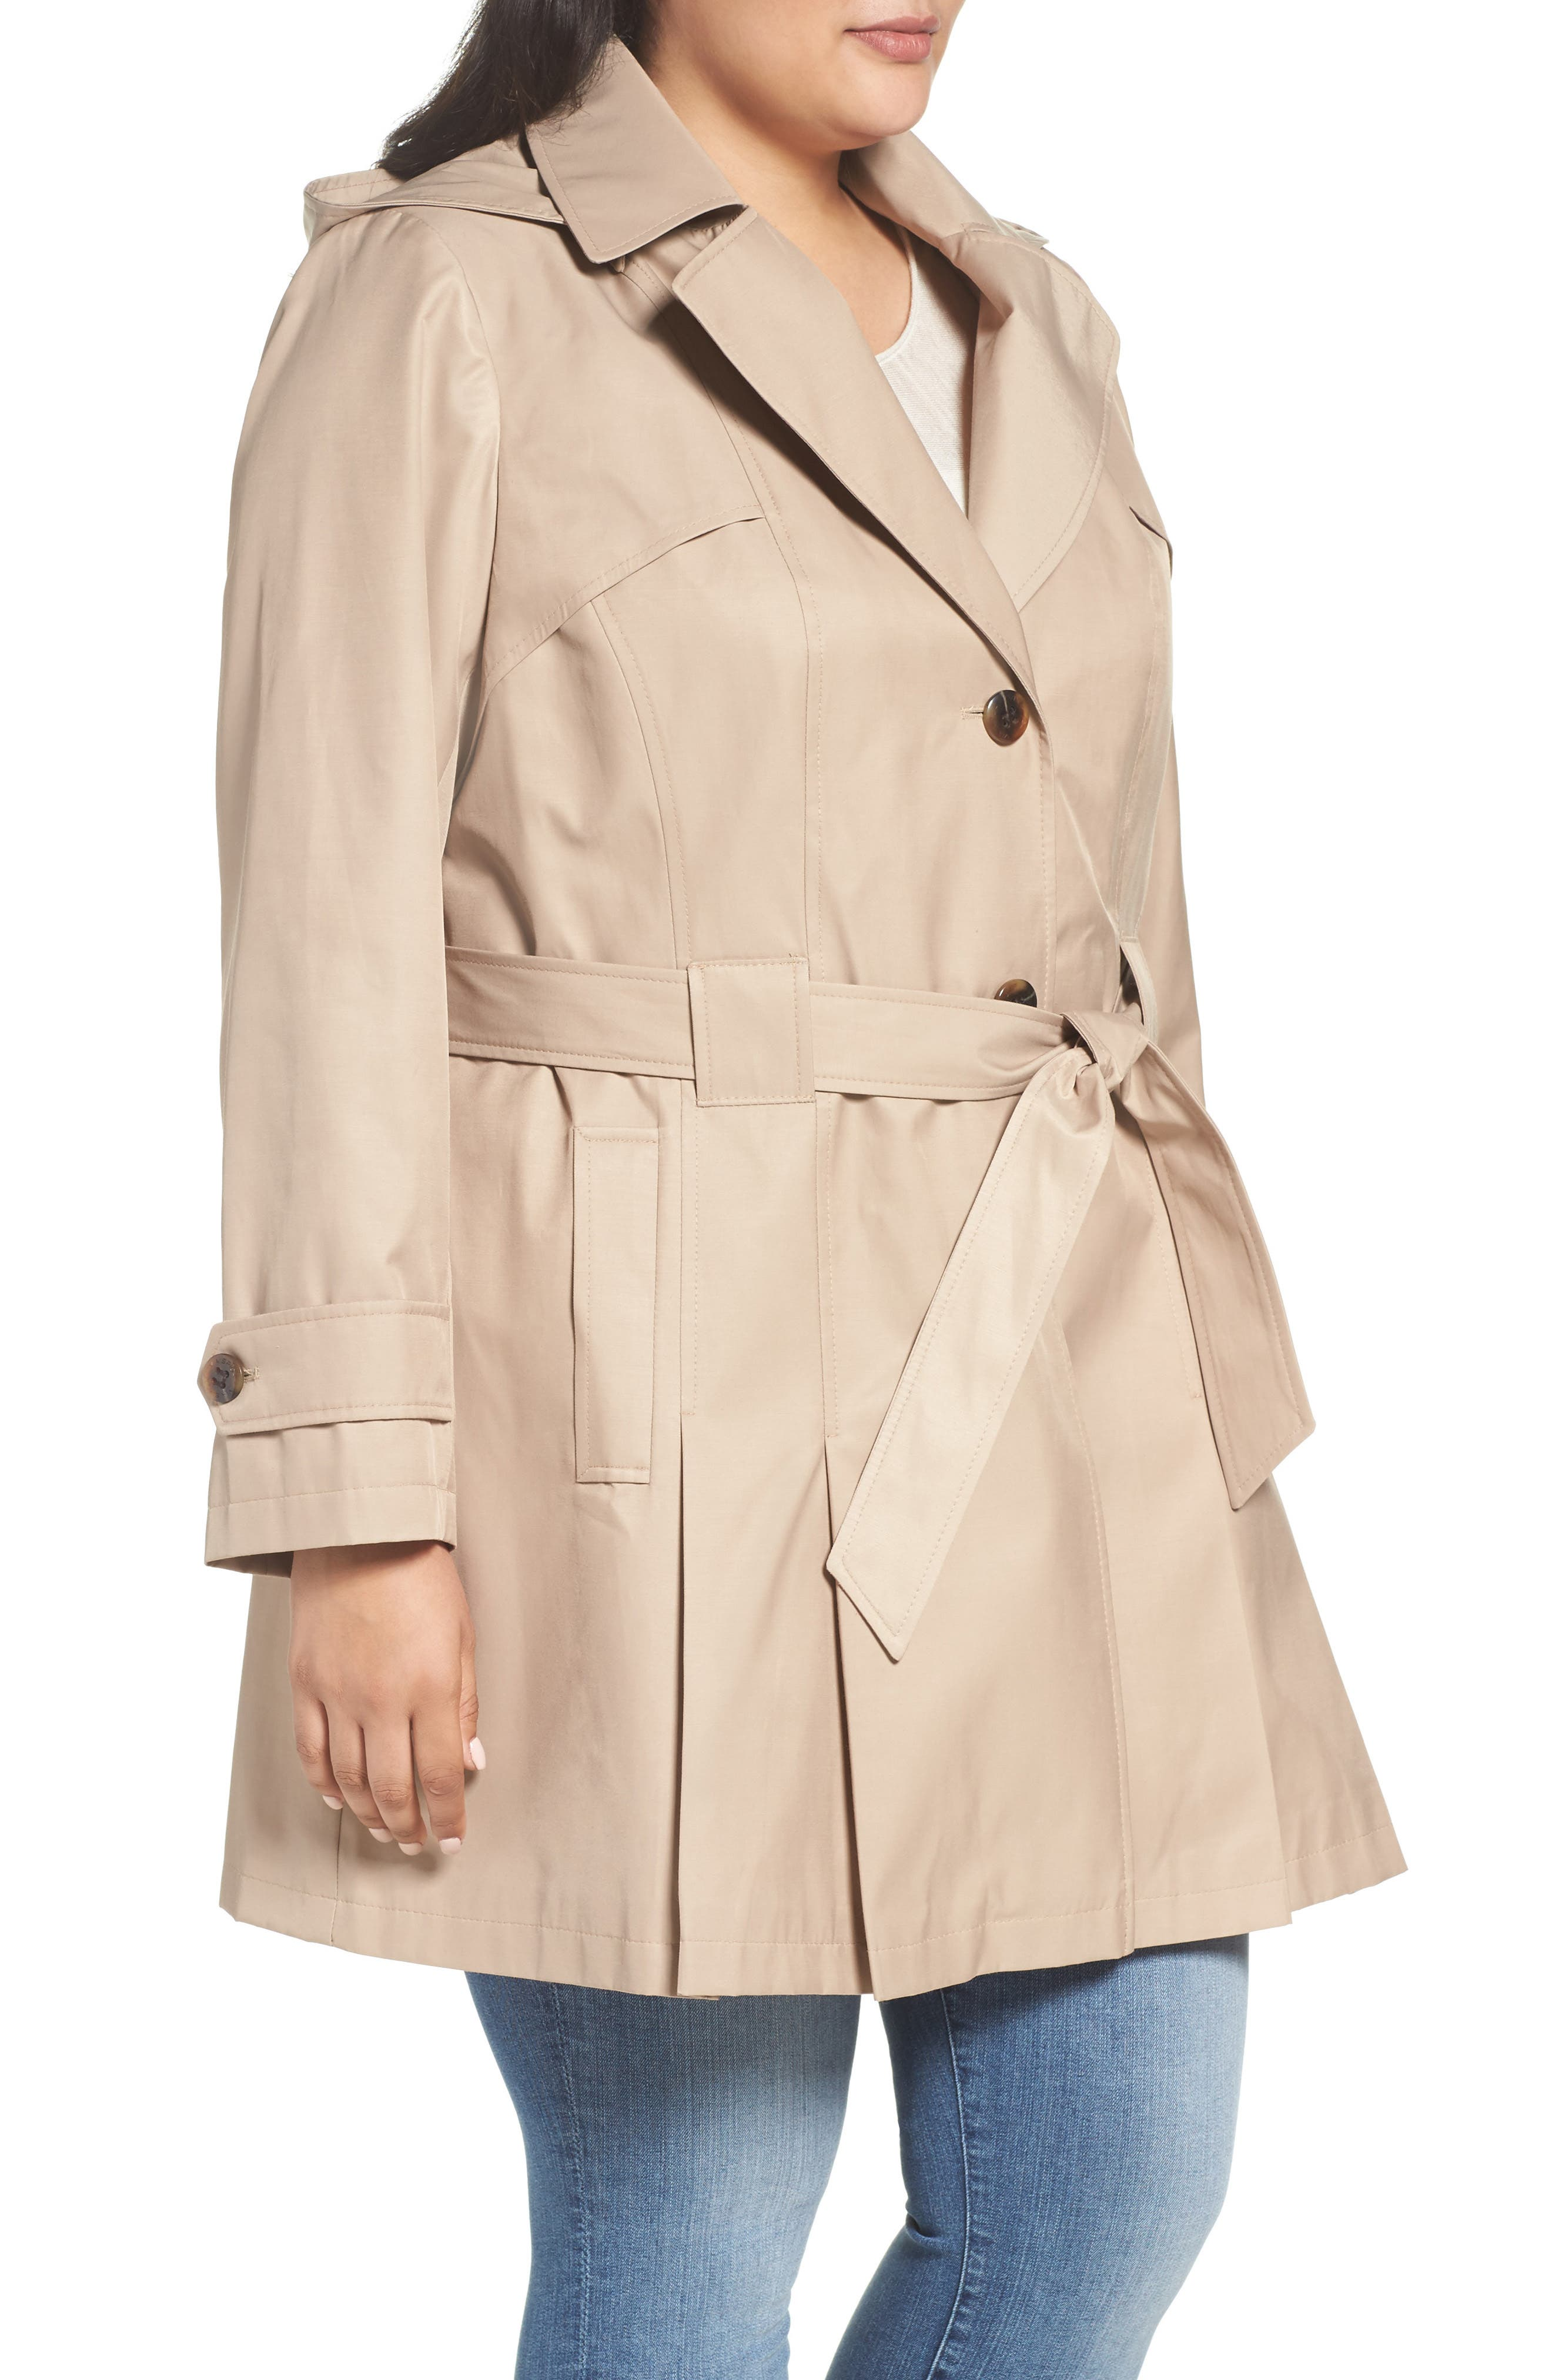 'Scarpa' Single Breasted Trench Coat,                             Alternate thumbnail 15, color,